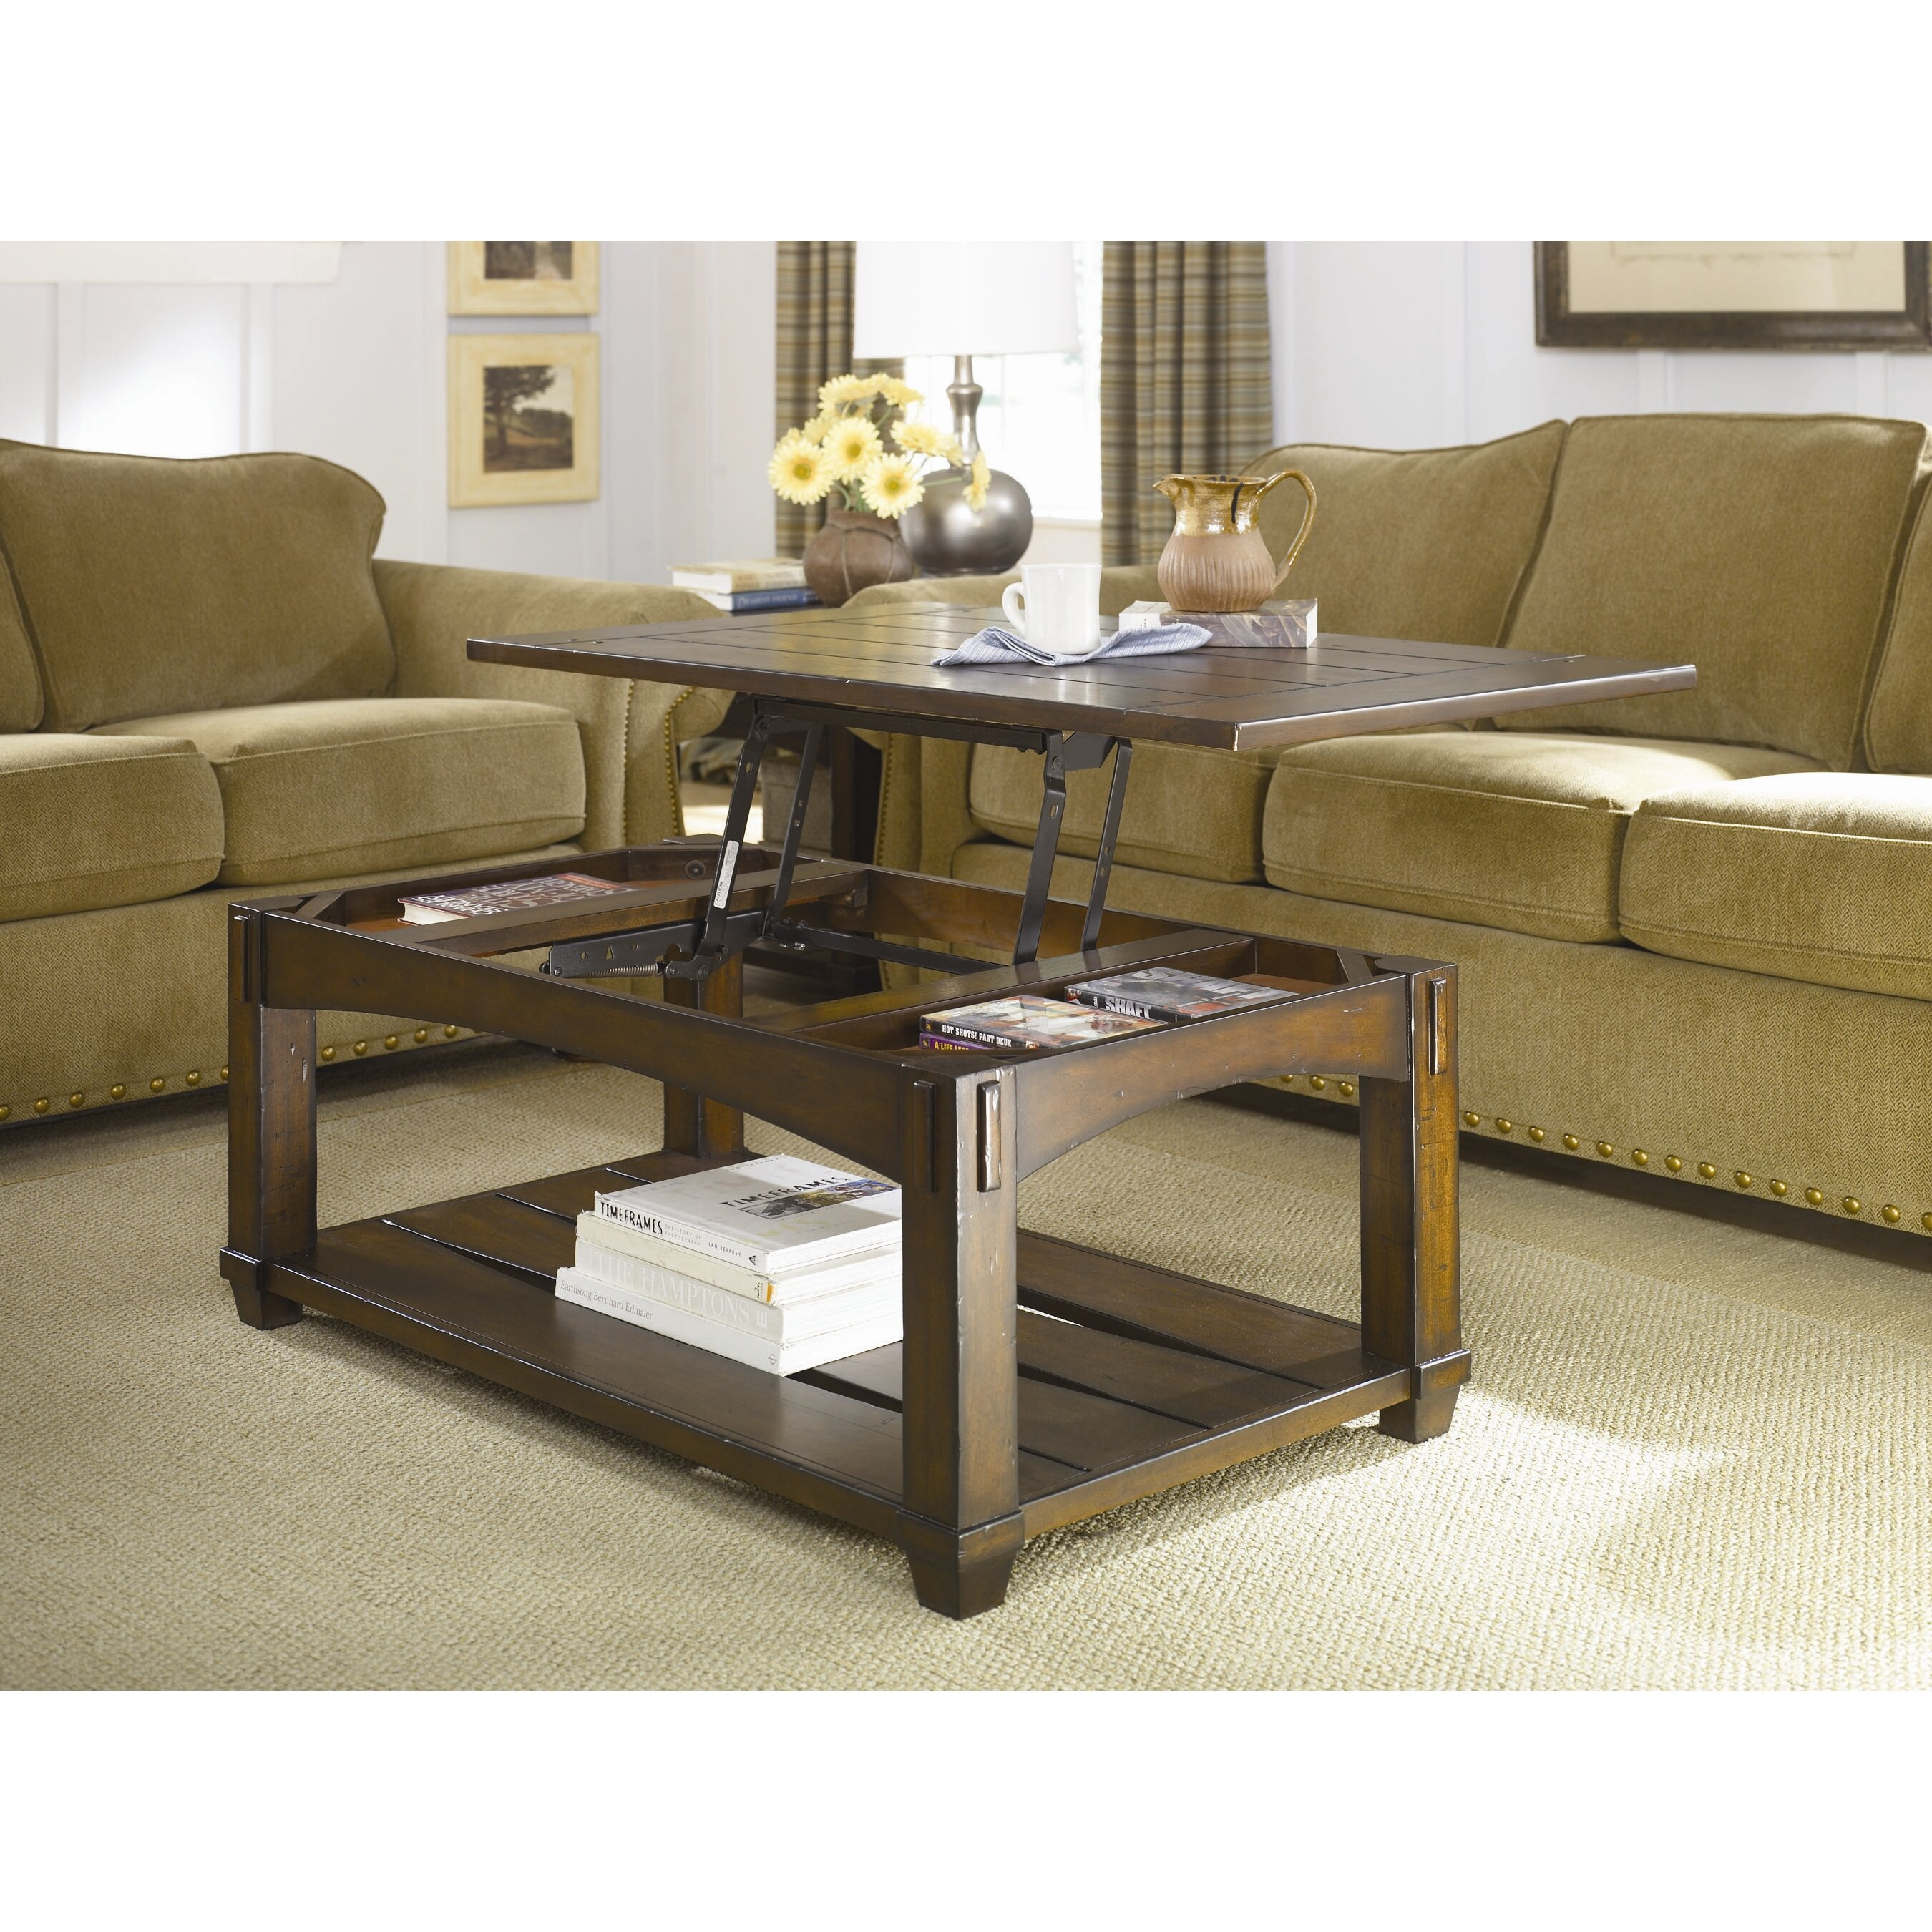 hammary tacoma coffee table set reviews wayfair. Black Bedroom Furniture Sets. Home Design Ideas